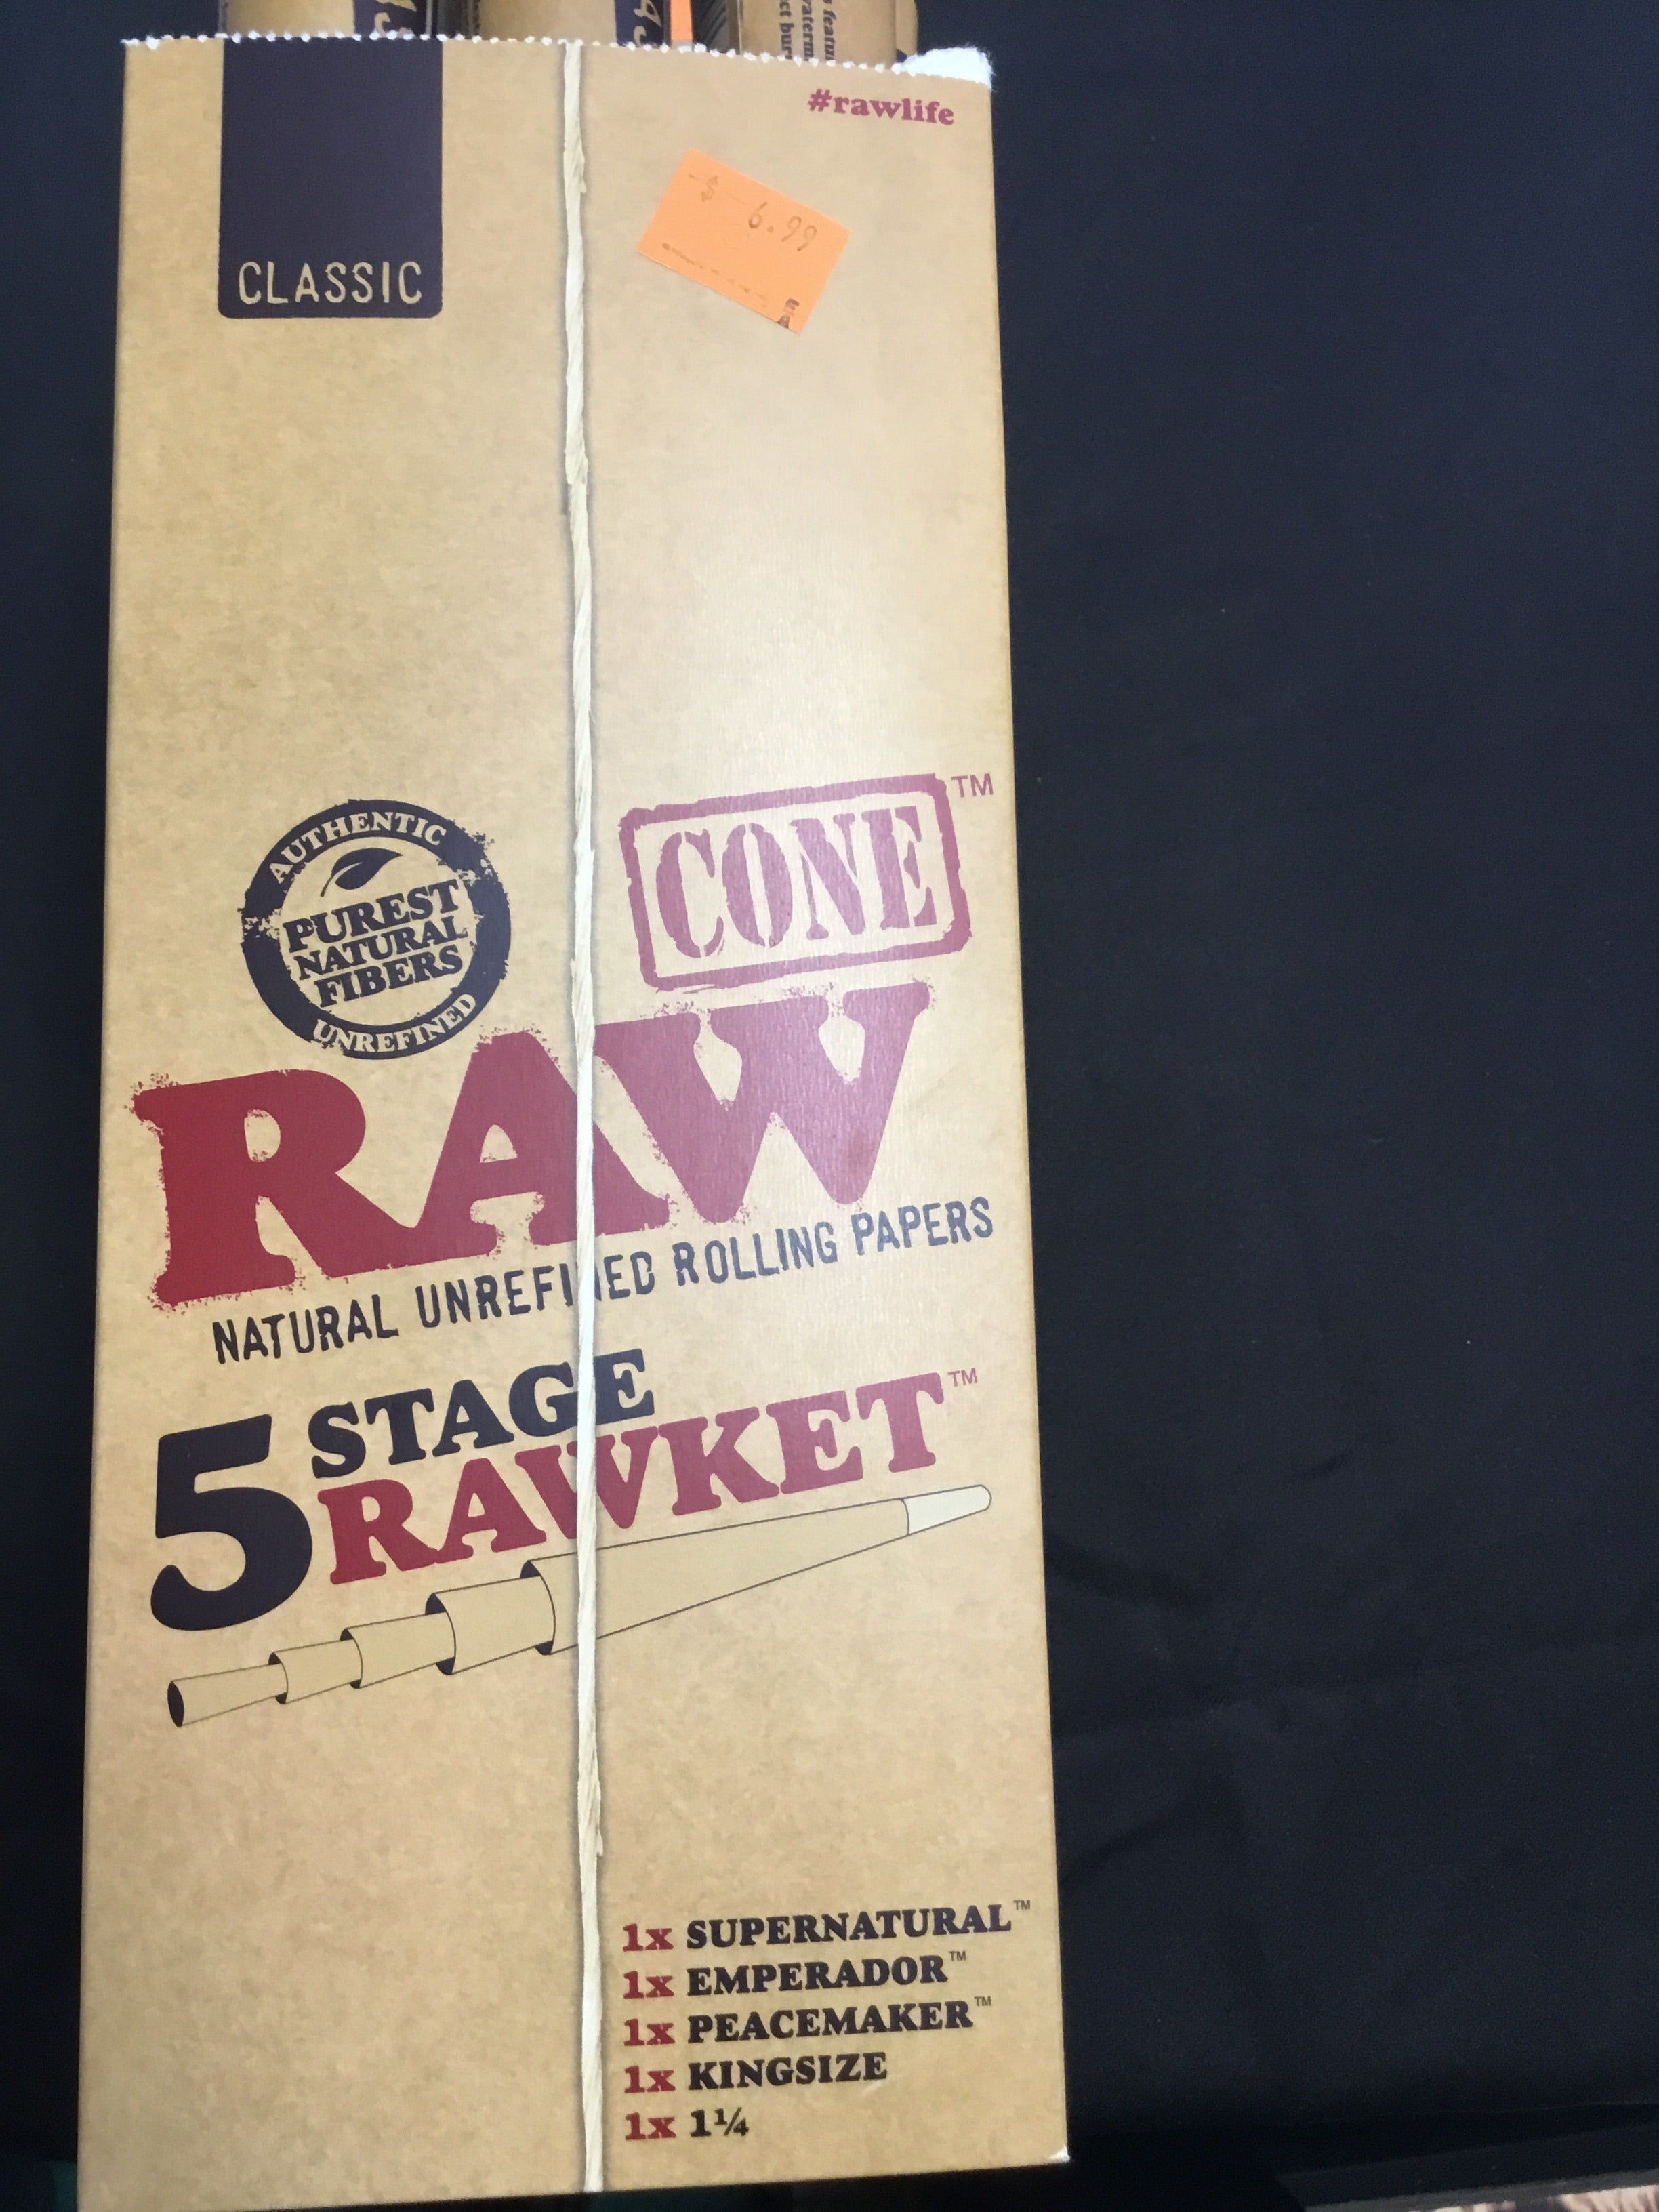 Raw 5 Stage Rocket Cones